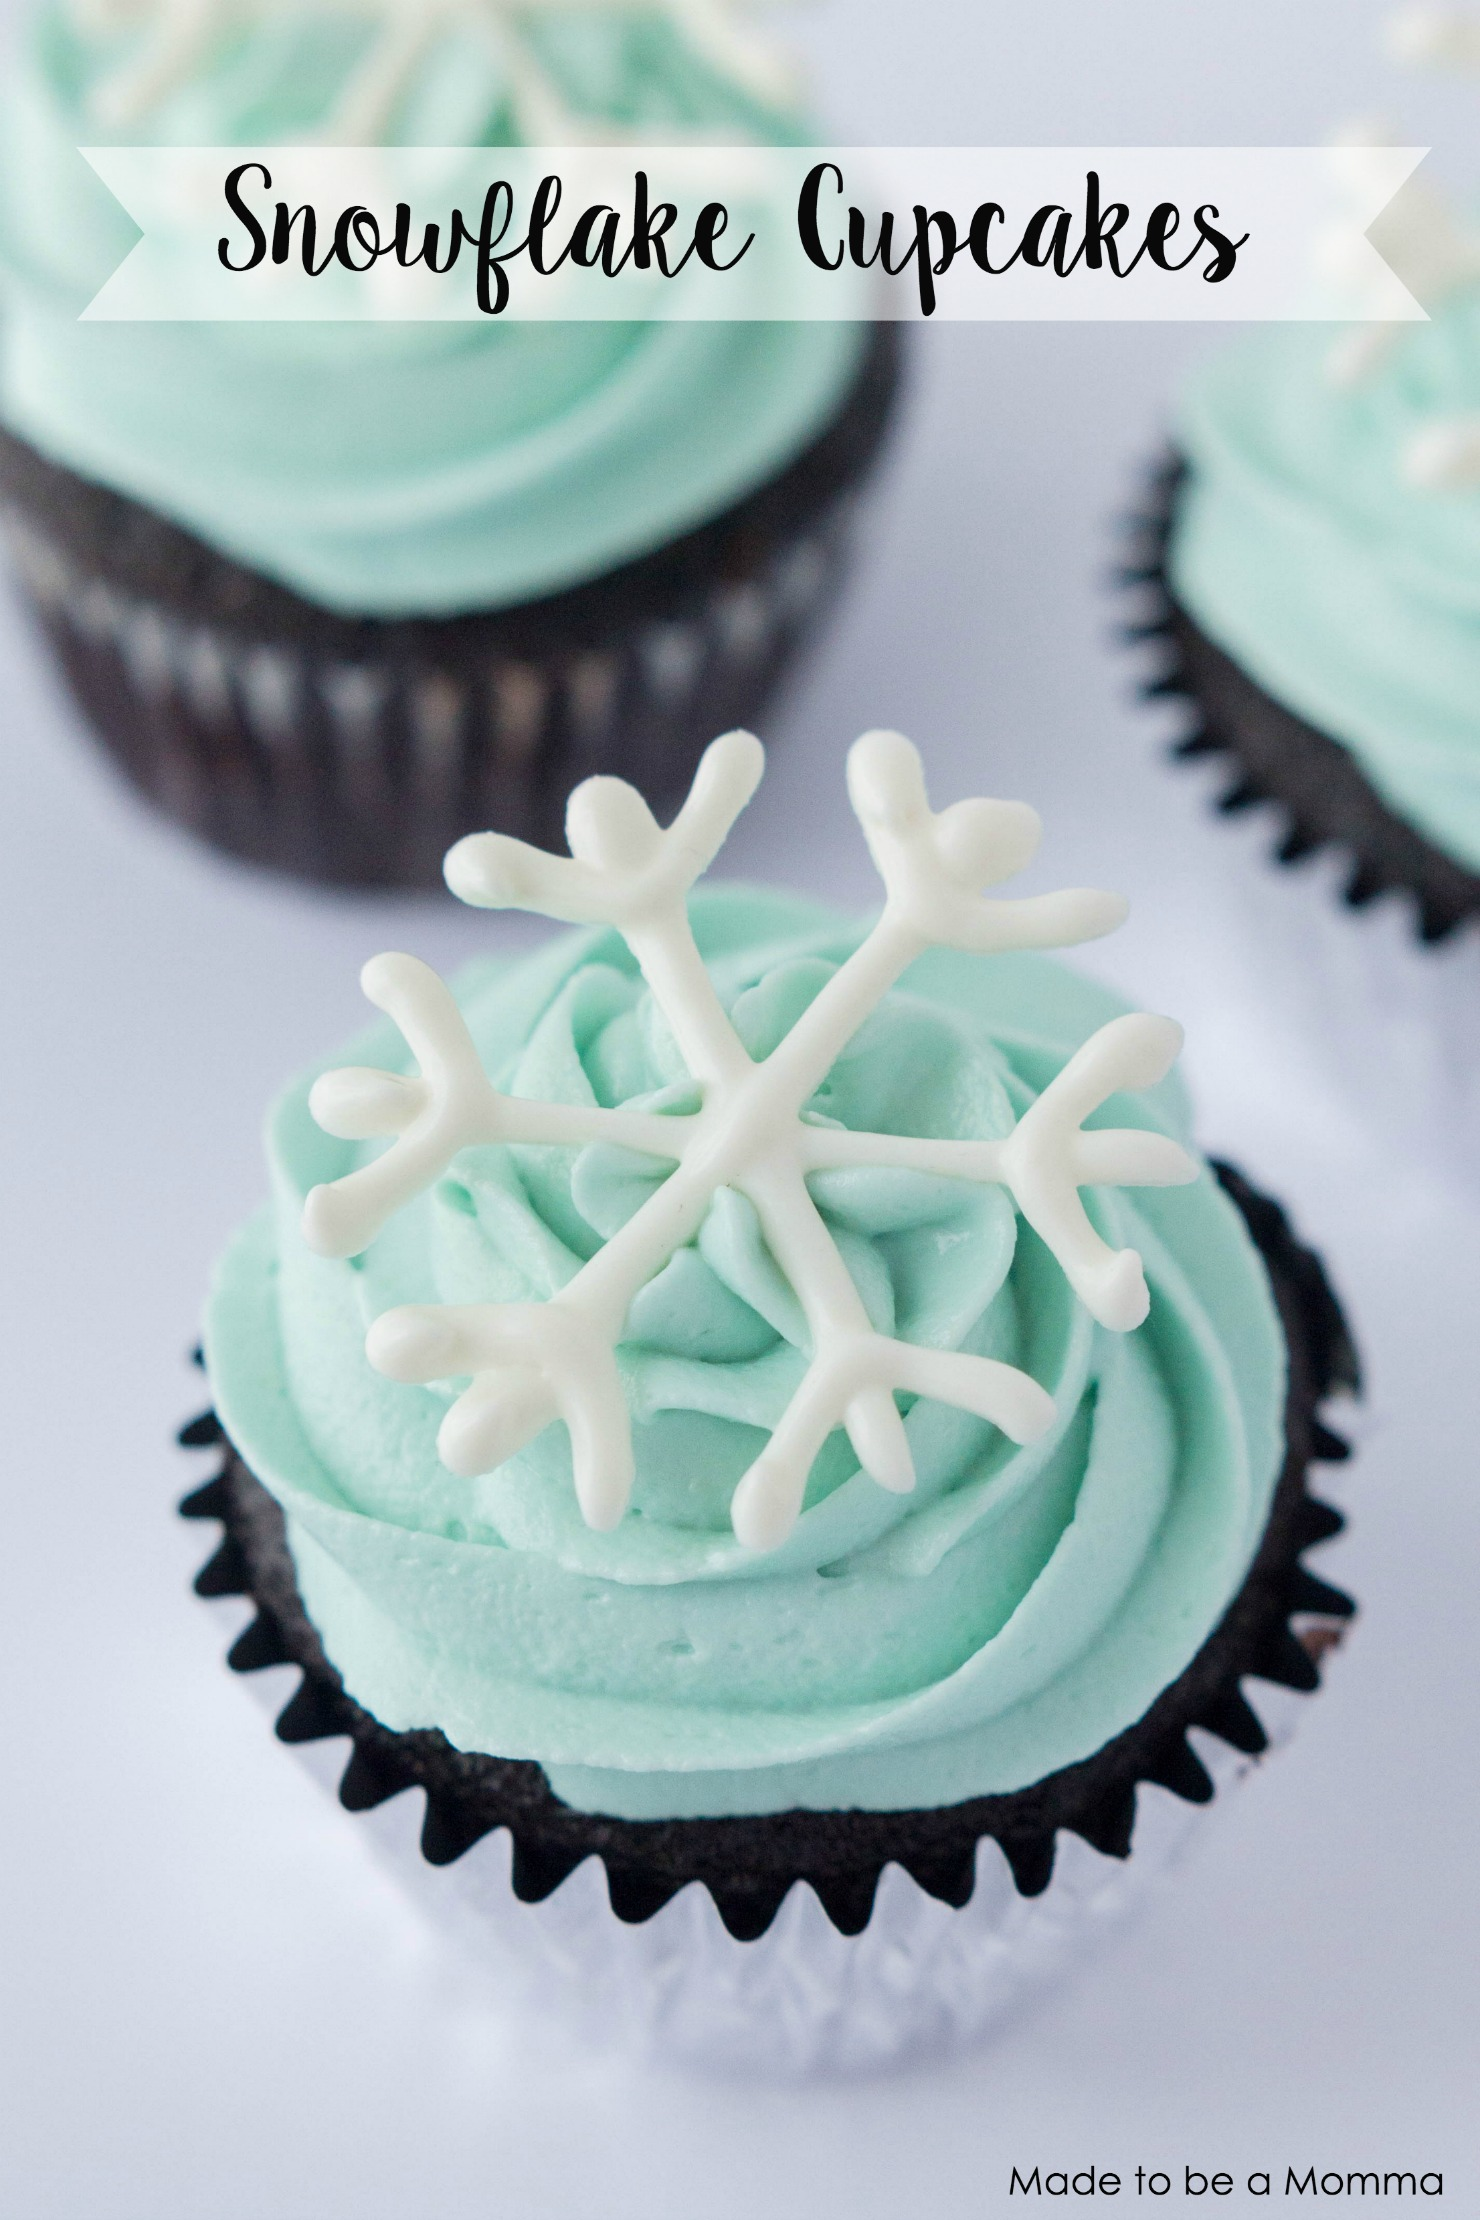 You will never believe how simple these snowflake cupcakes are! All you need is some melting chocolate, cake decorating bag and tip, parchment paper and a snowflake template to trace.